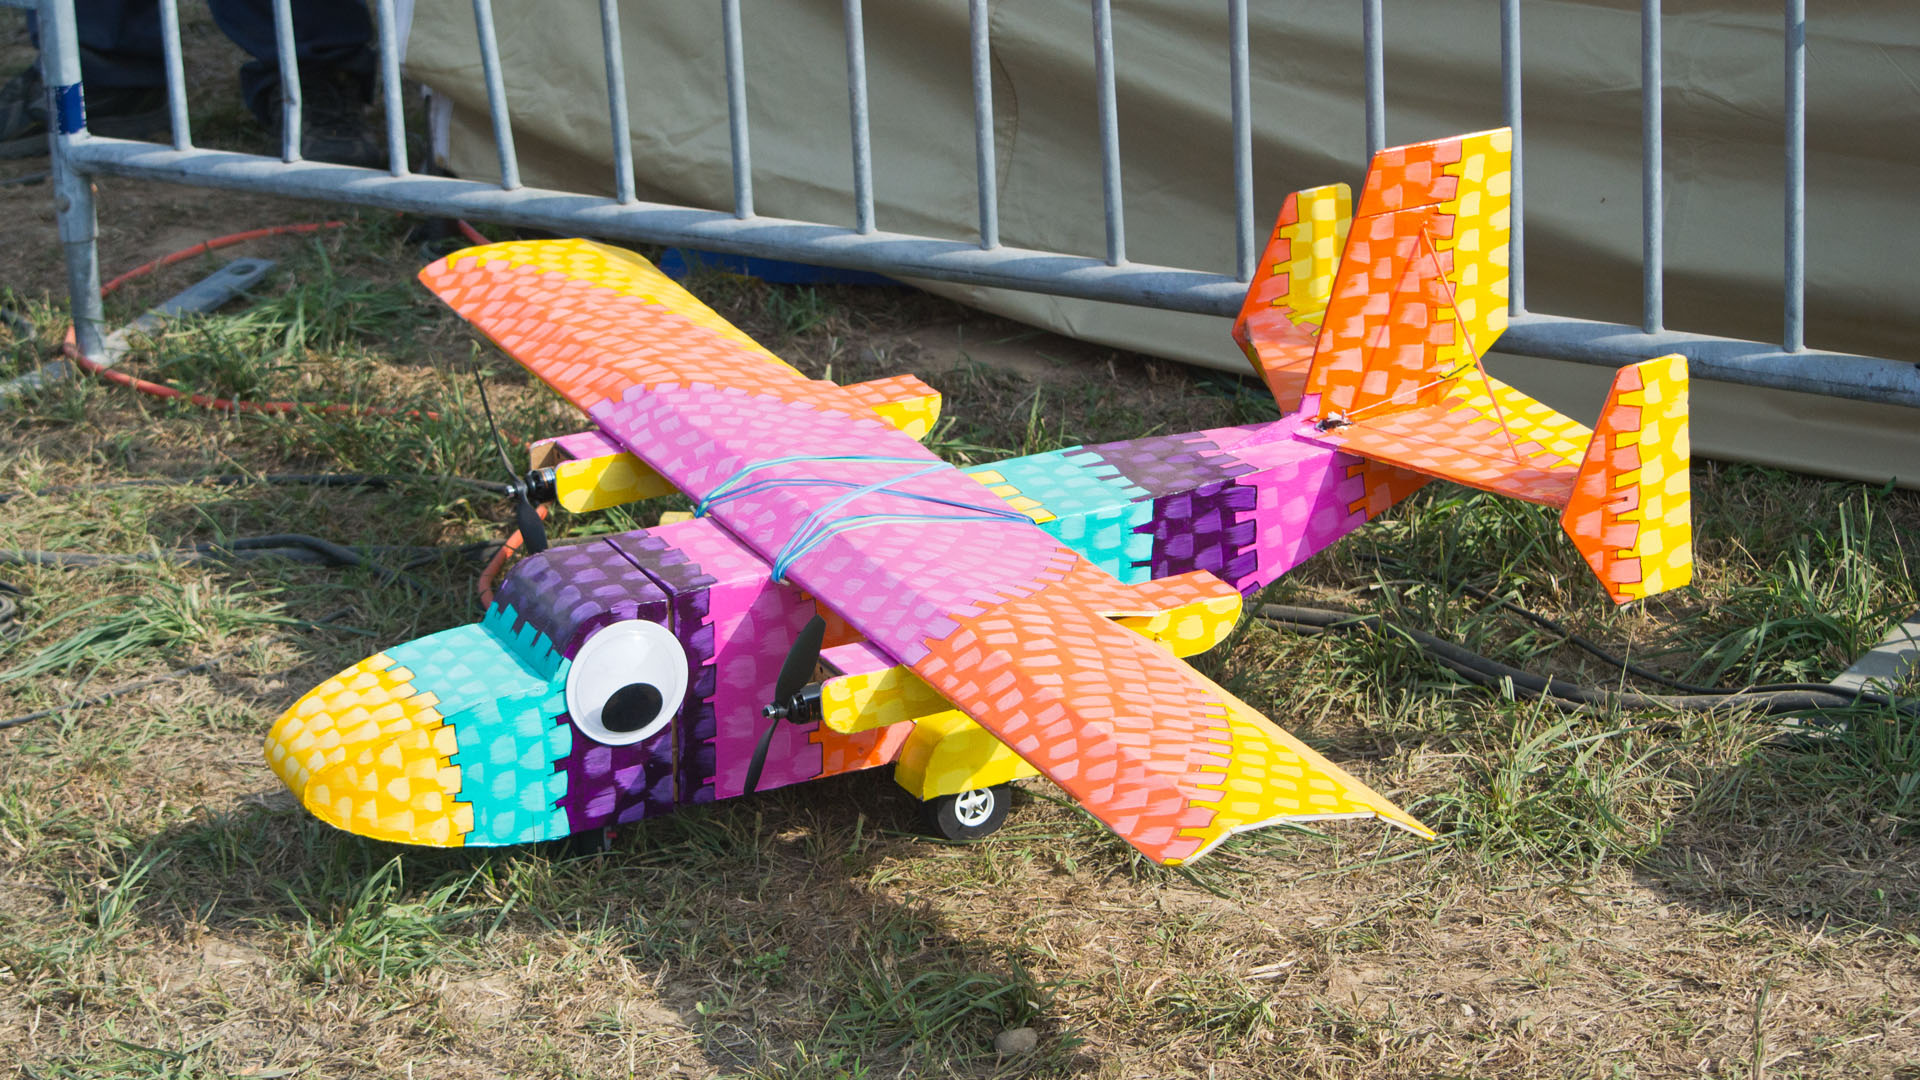 The Model Airplanes of Flite Fest Ohio - Tested